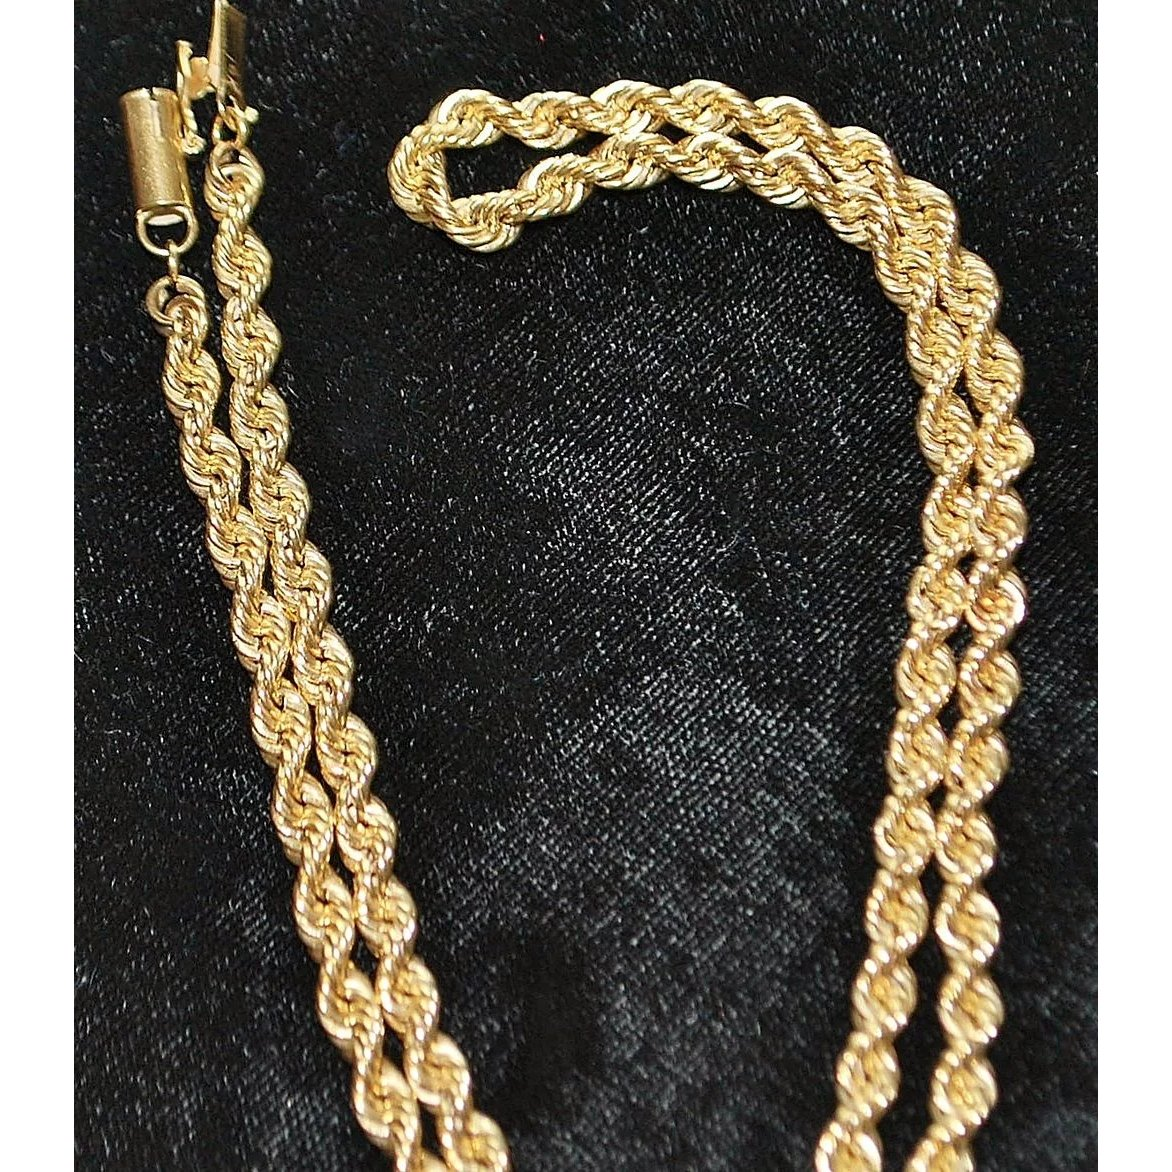 415896a6bb328 14K Gold Rope Necklace, 1980's